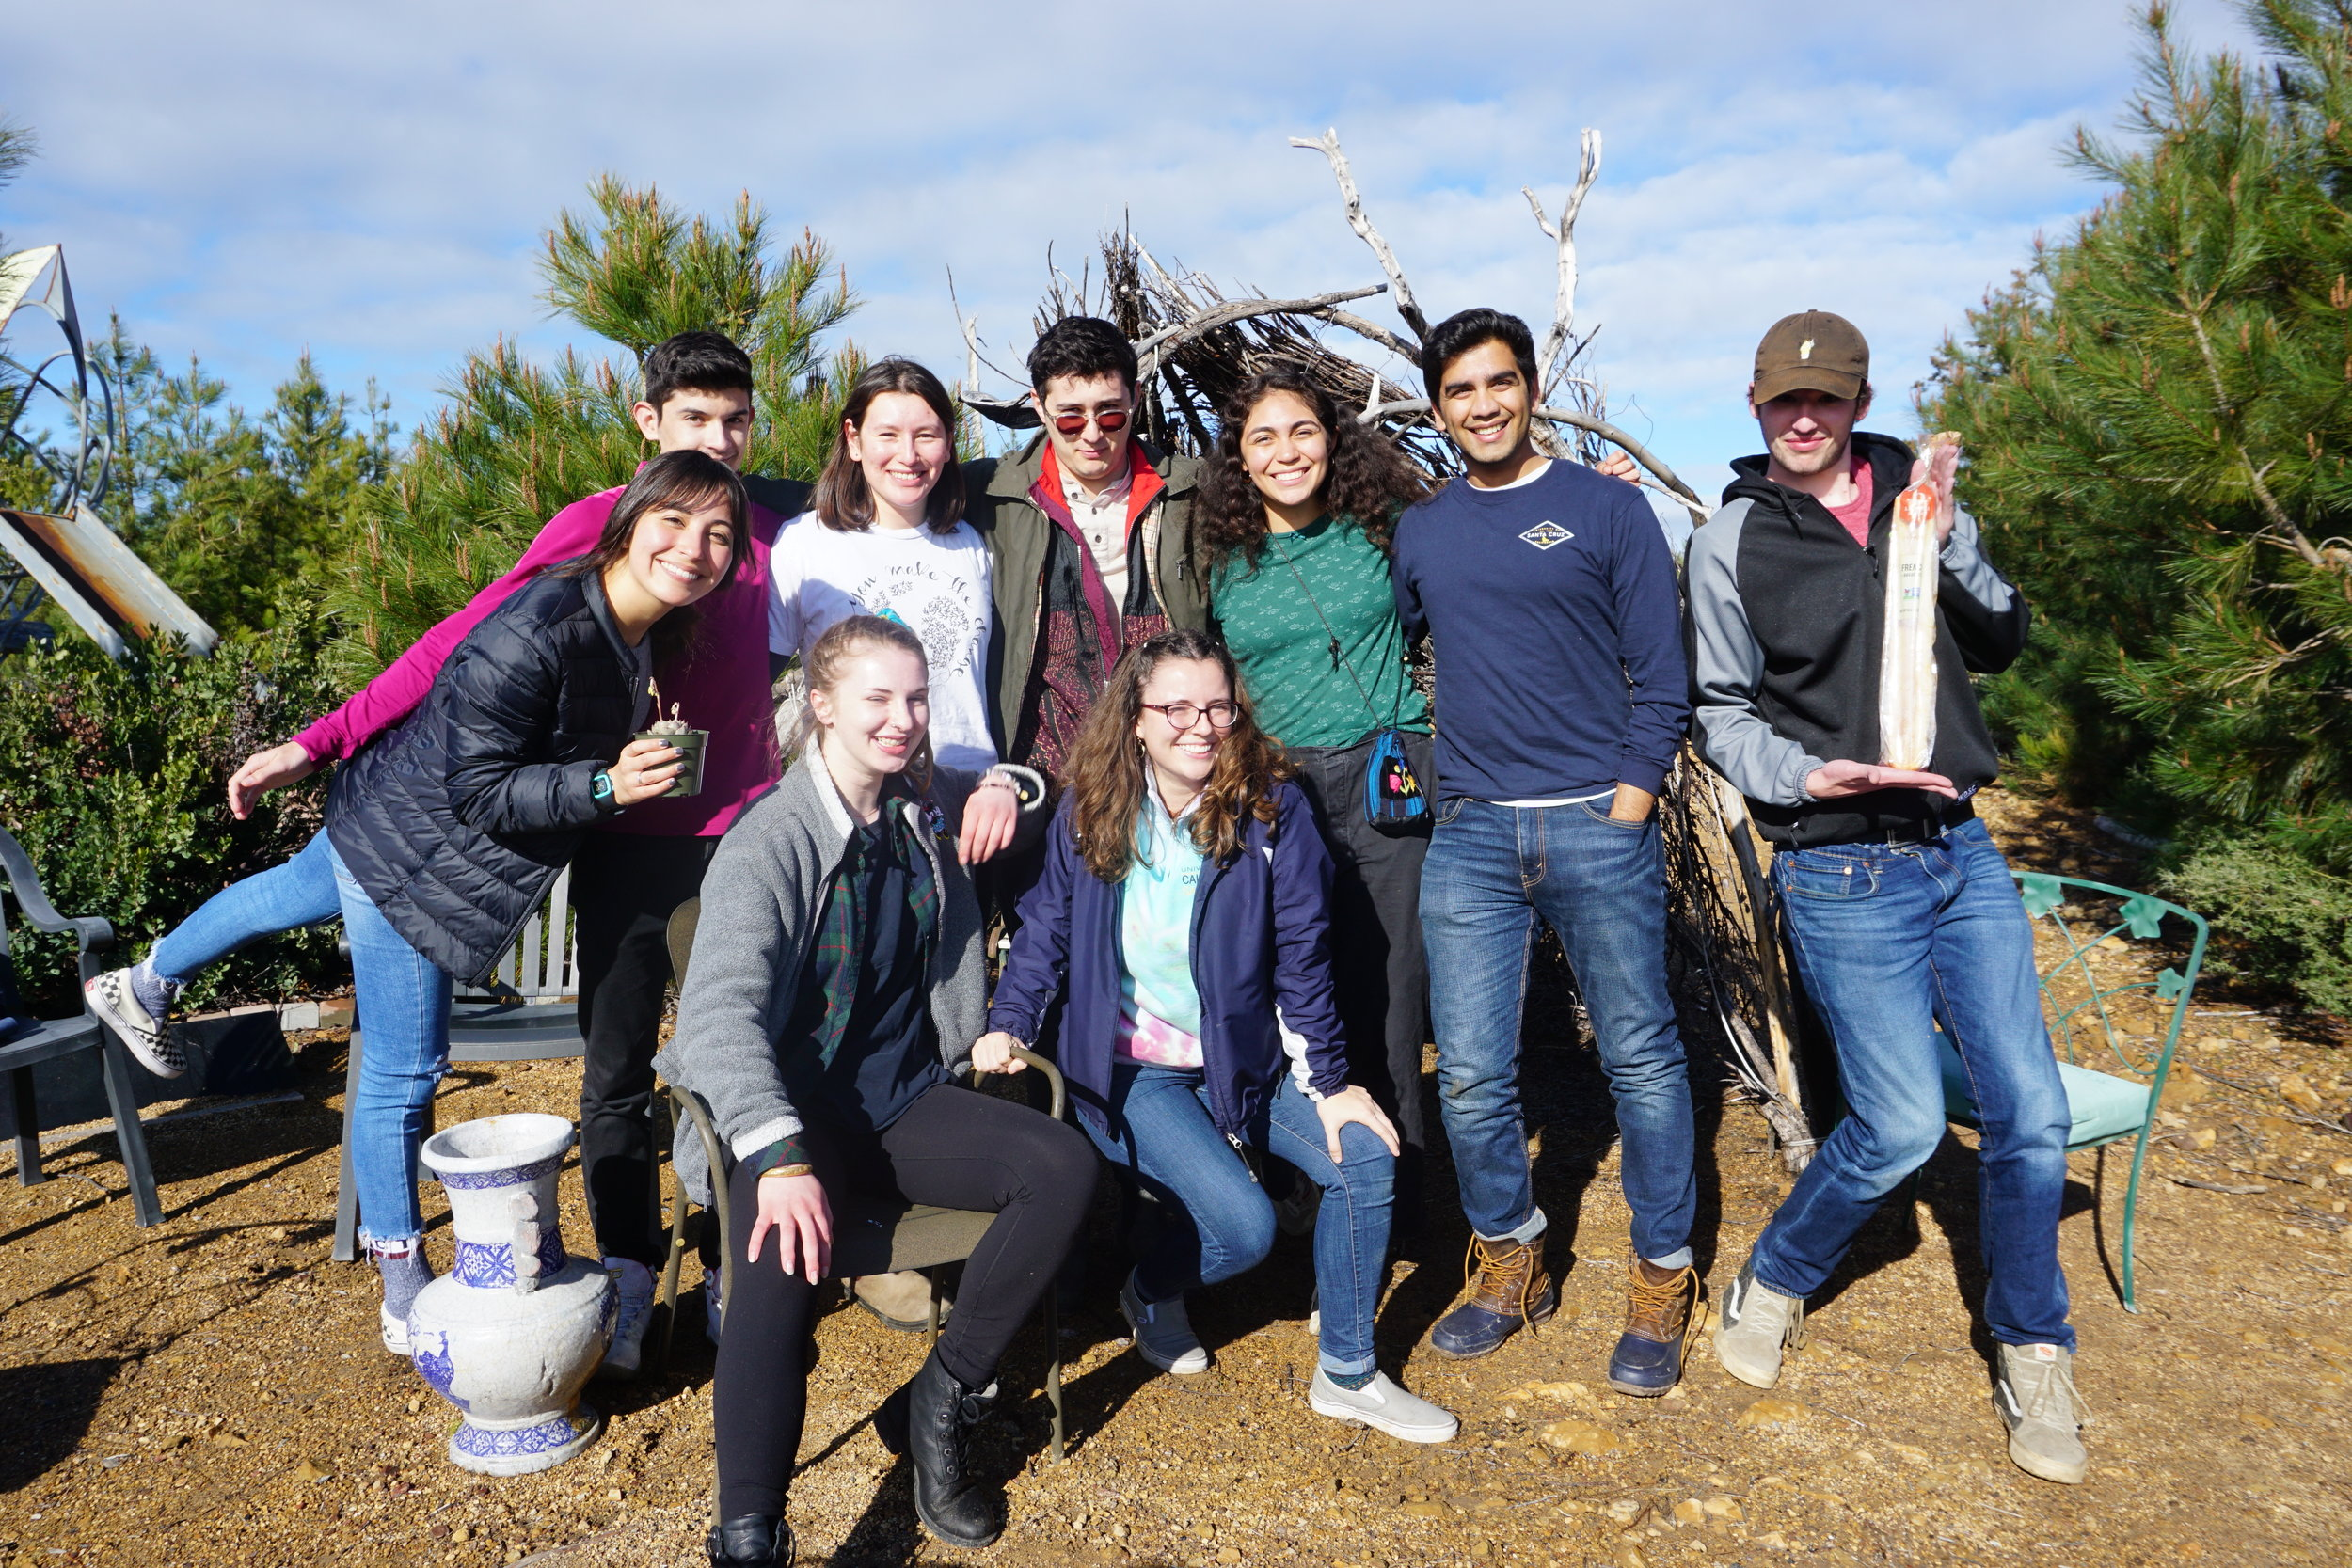 (Some of ) Our Spring 2019 team at Spring Retreat held at Wind Tree in the Santa Cruz Mountains (April 6th, 2019)